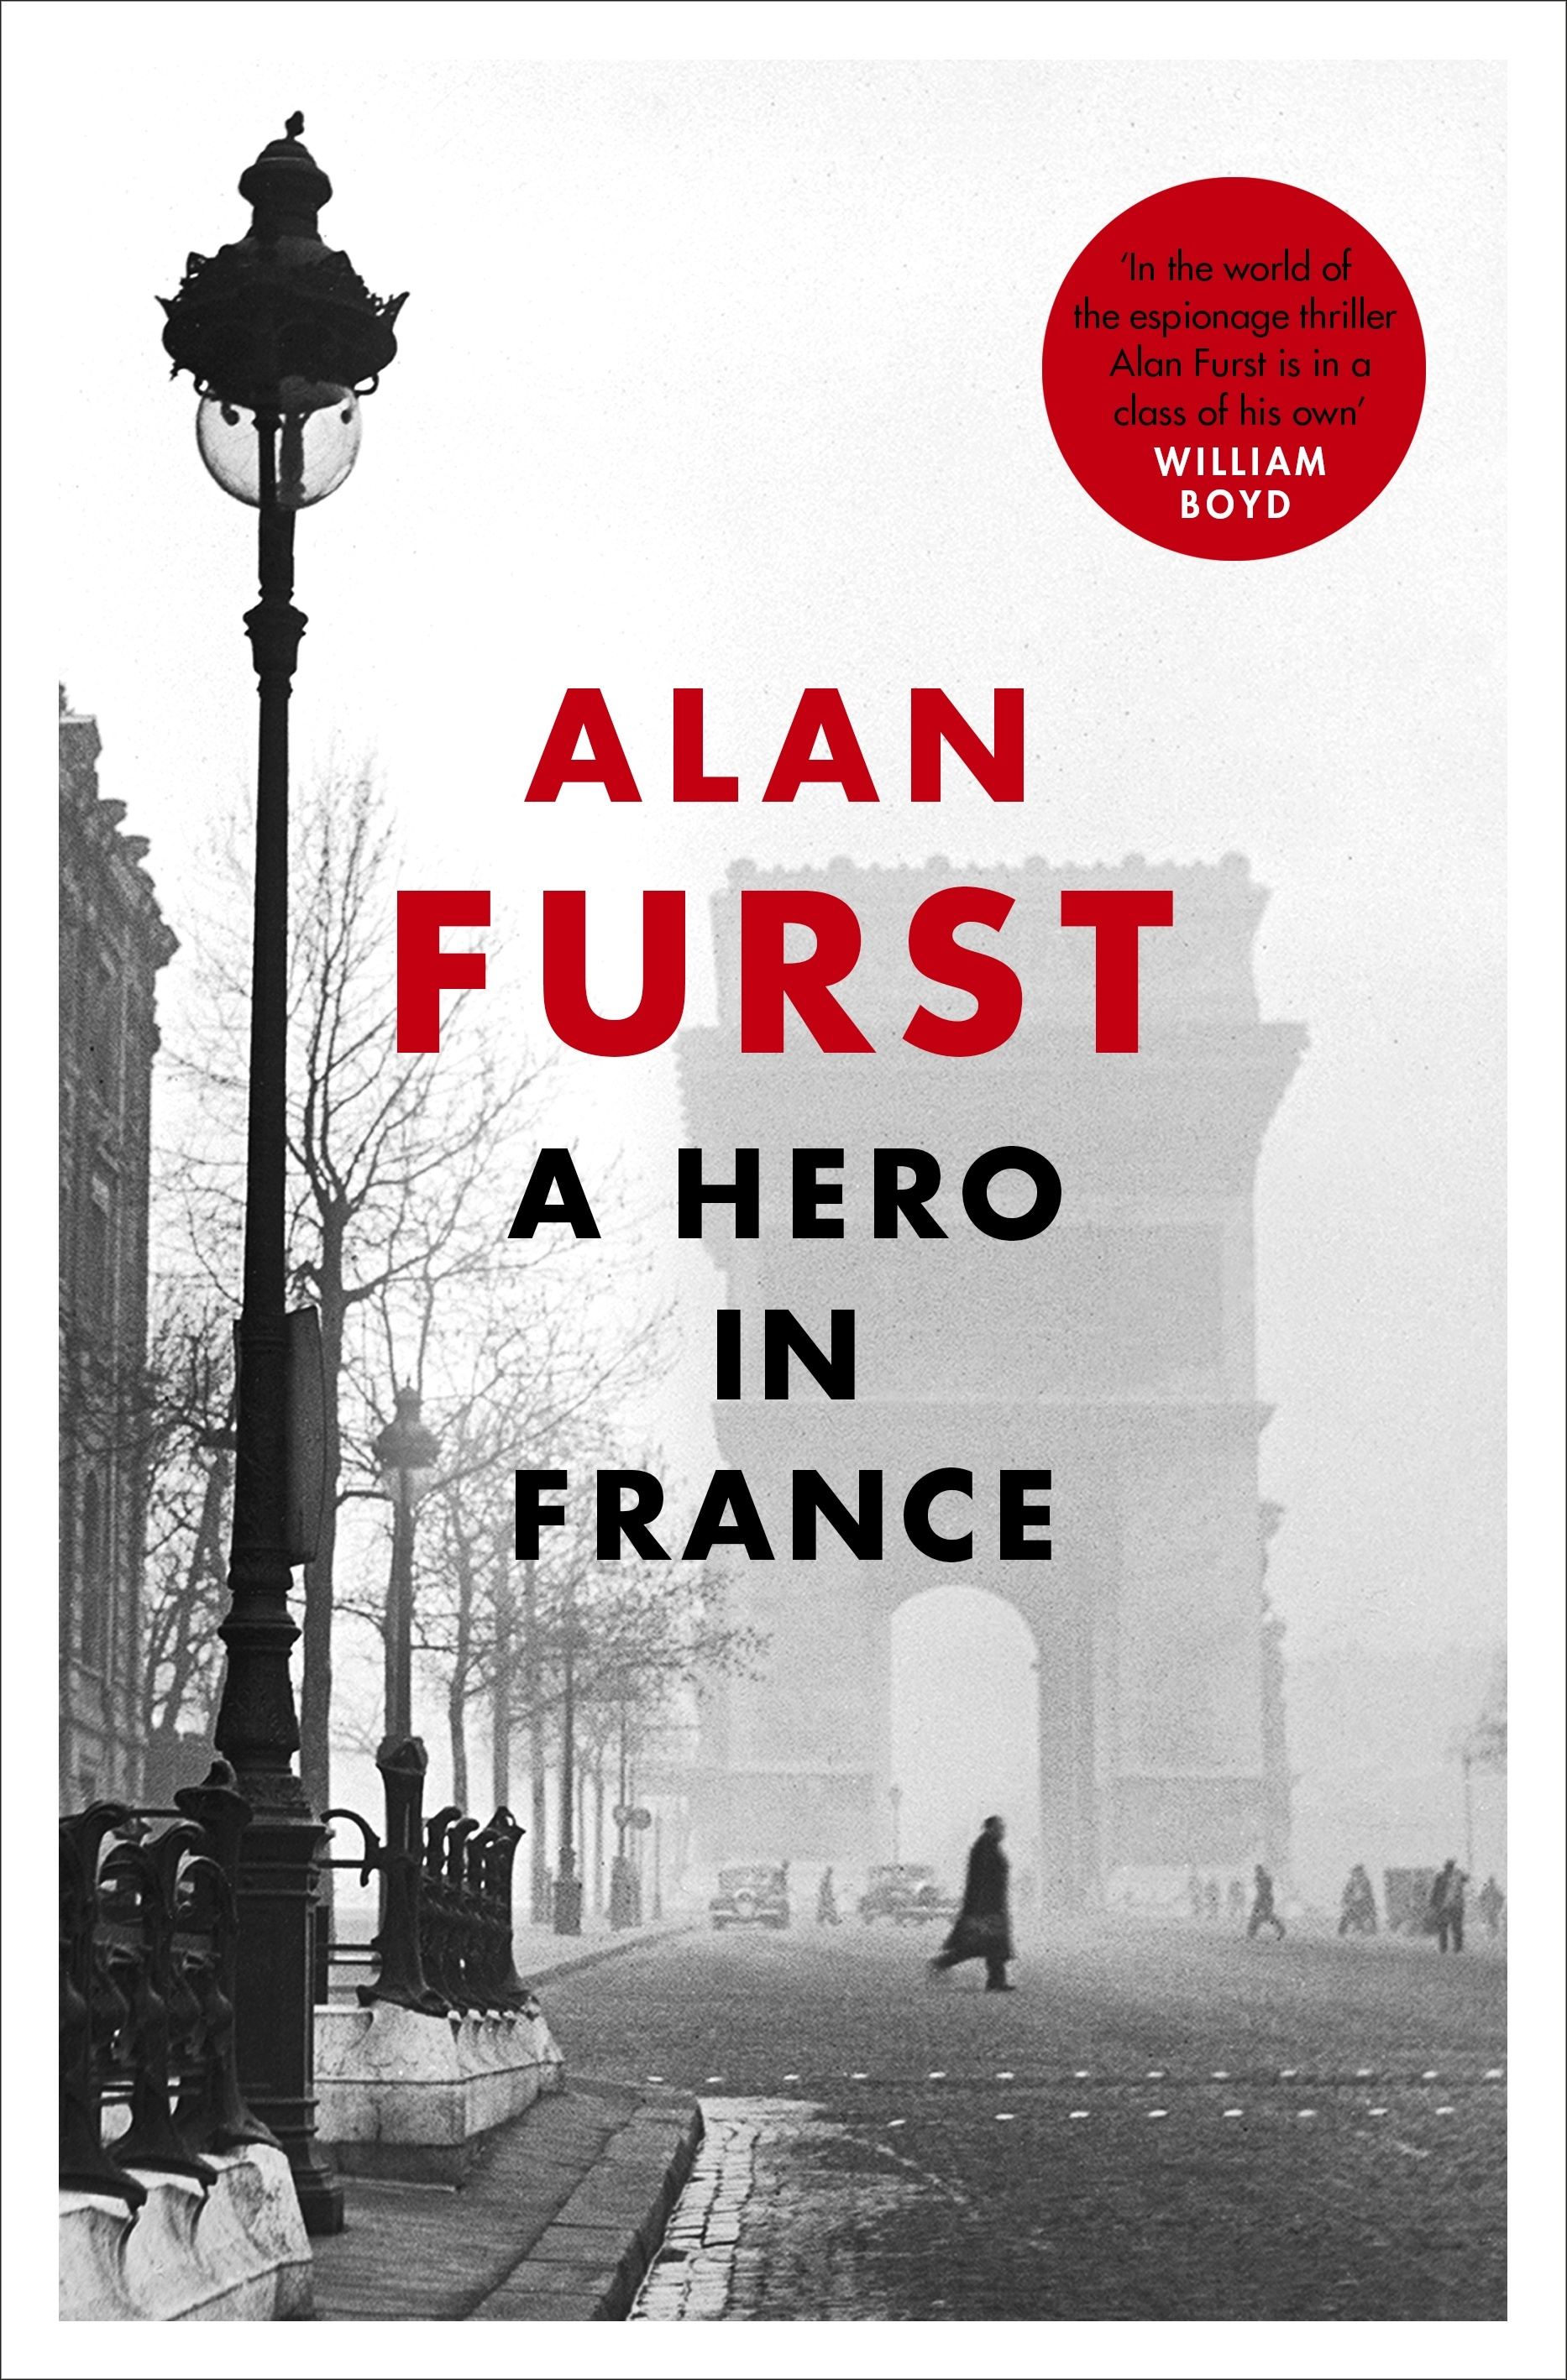 Alan Furst_A hero in France 2